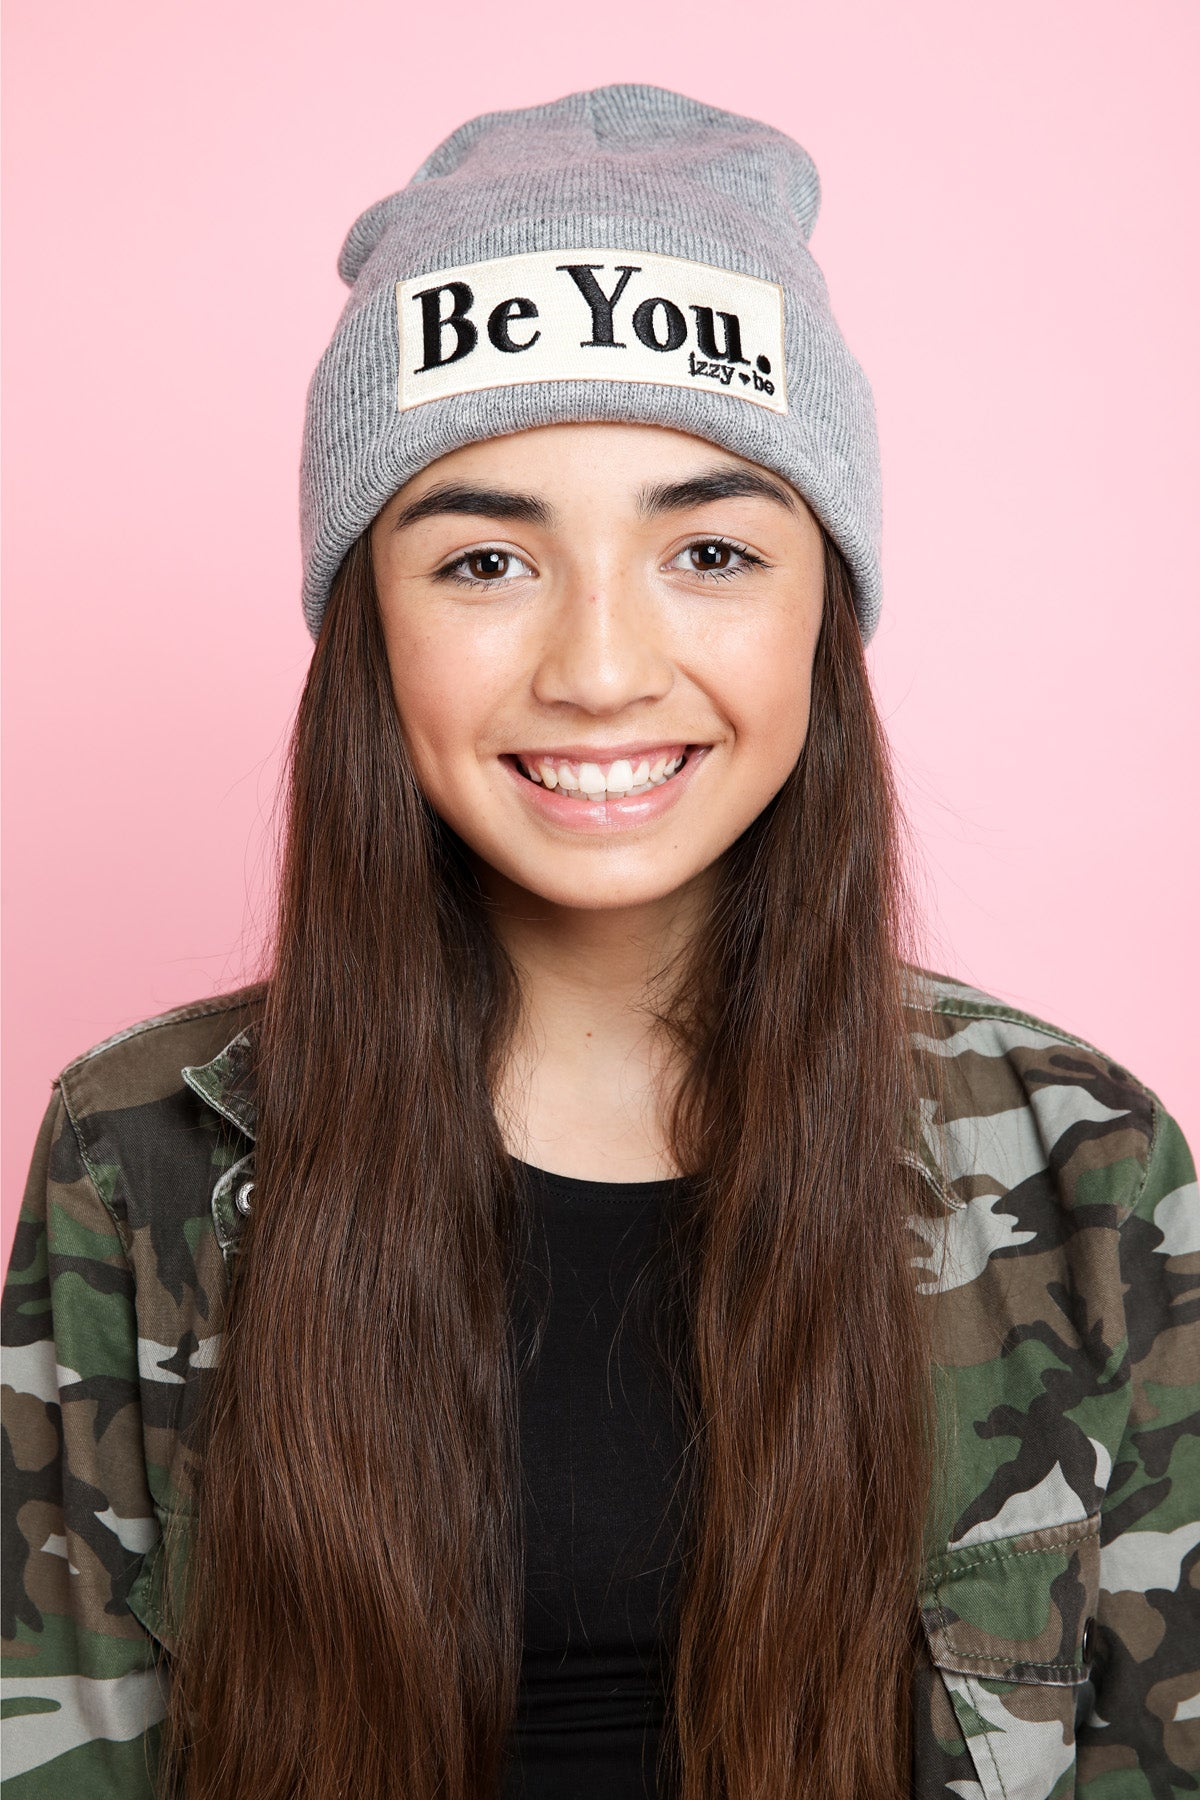 BE YOU. Embroidered Patch Beanie in Heather Grey